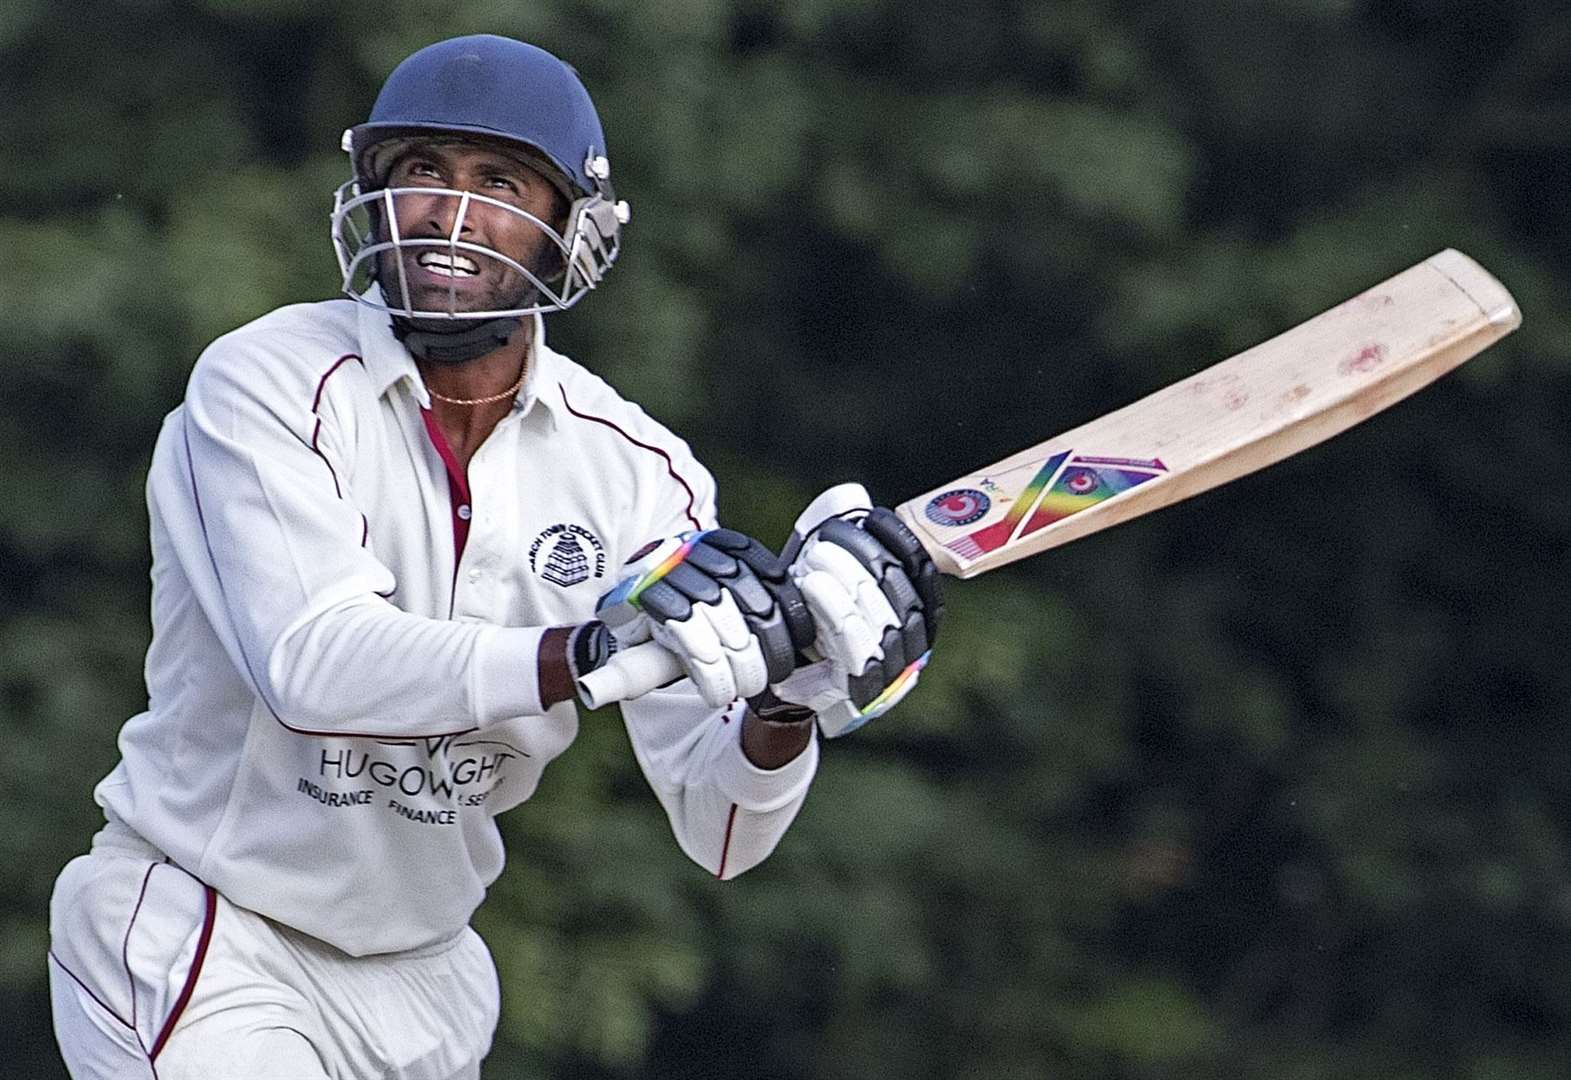 Ton-up March cricketer hits highest league score vs Foxton